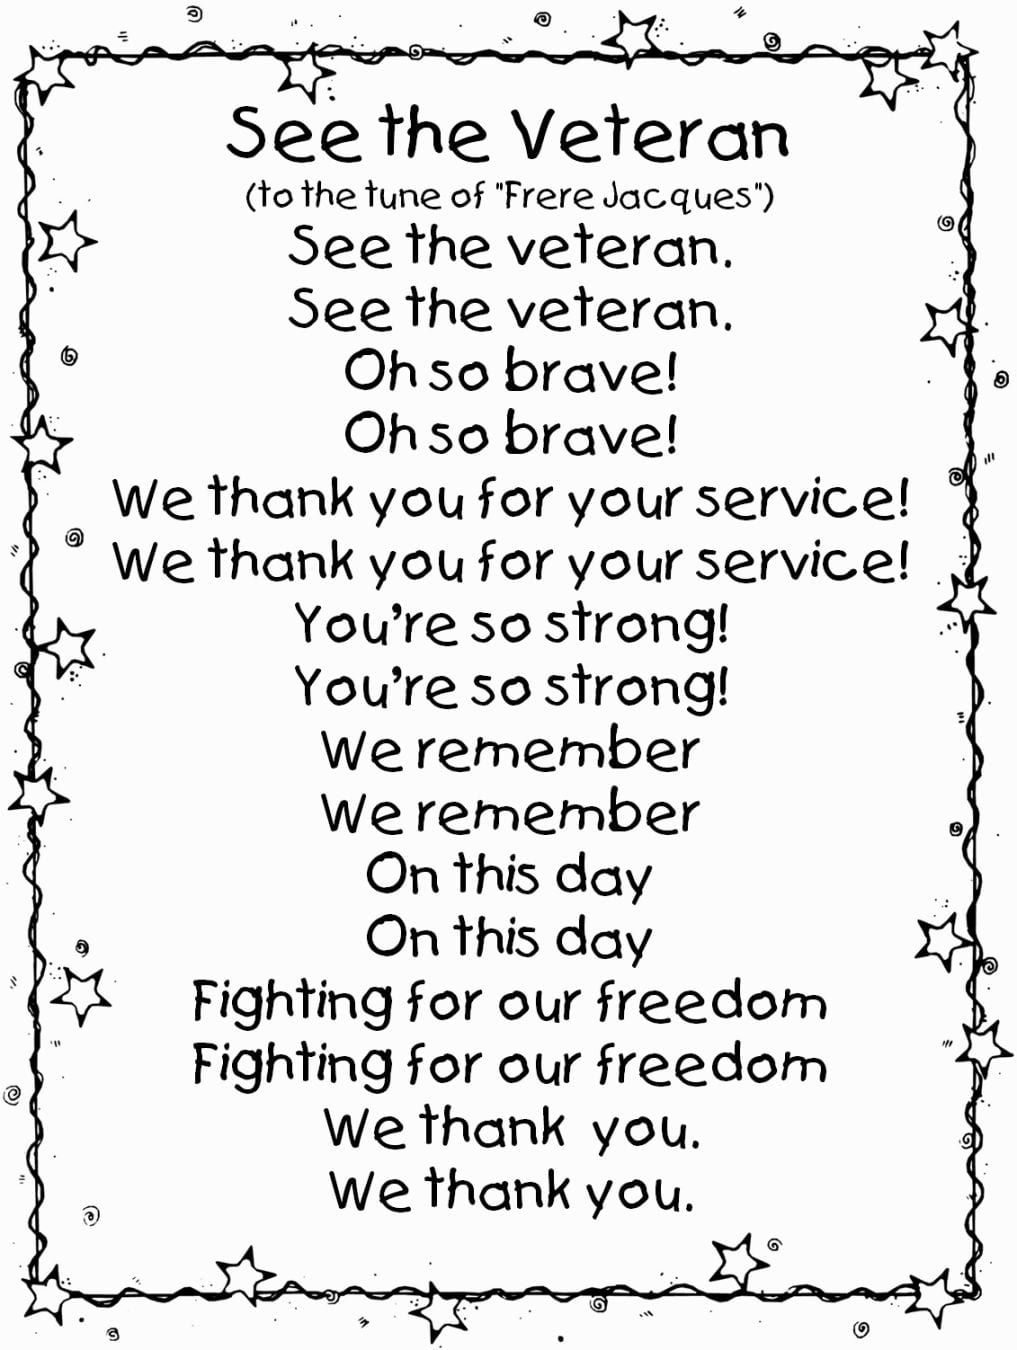 Coloring Pages Of Veterans Day Veterans Day Songs Veterans Day Activities Veterans Day Poem [ 1350 x 1017 Pixel ]